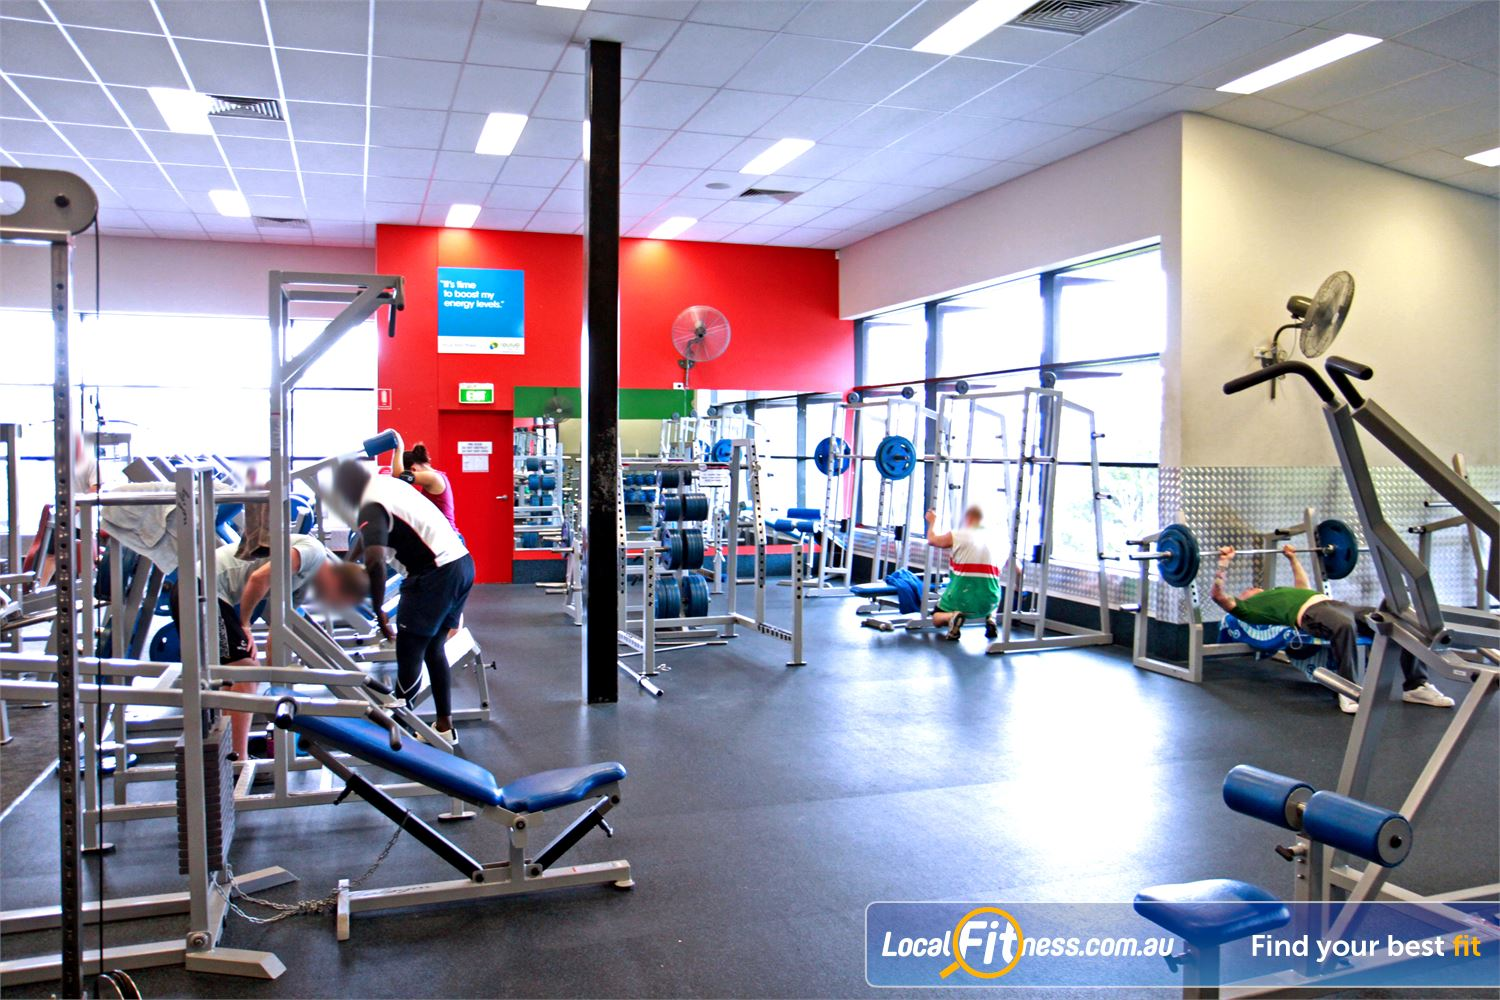 Goodlife Health Clubs Holland Park The fully equipped Holland Park free-weights gym area.